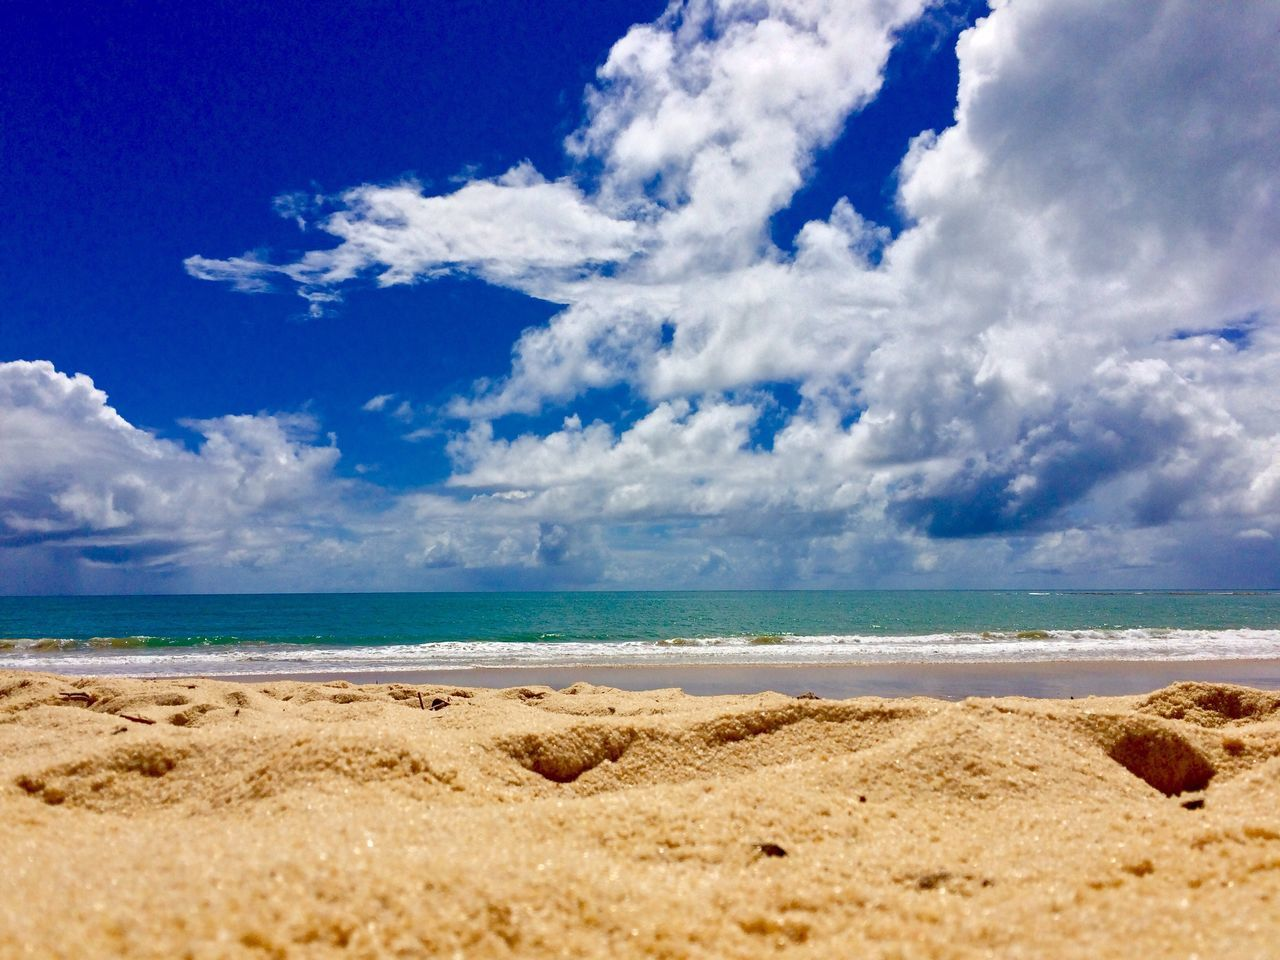 Iphonephotography IPhoneography Iphoneonly Sea Beach Blue Sky Cloud - Sky Horizon Over Water No People Scenics Nature Water Outdoors Beauty In Nature Tropical Climate Beauty In Nature Tranquility Live For The Story